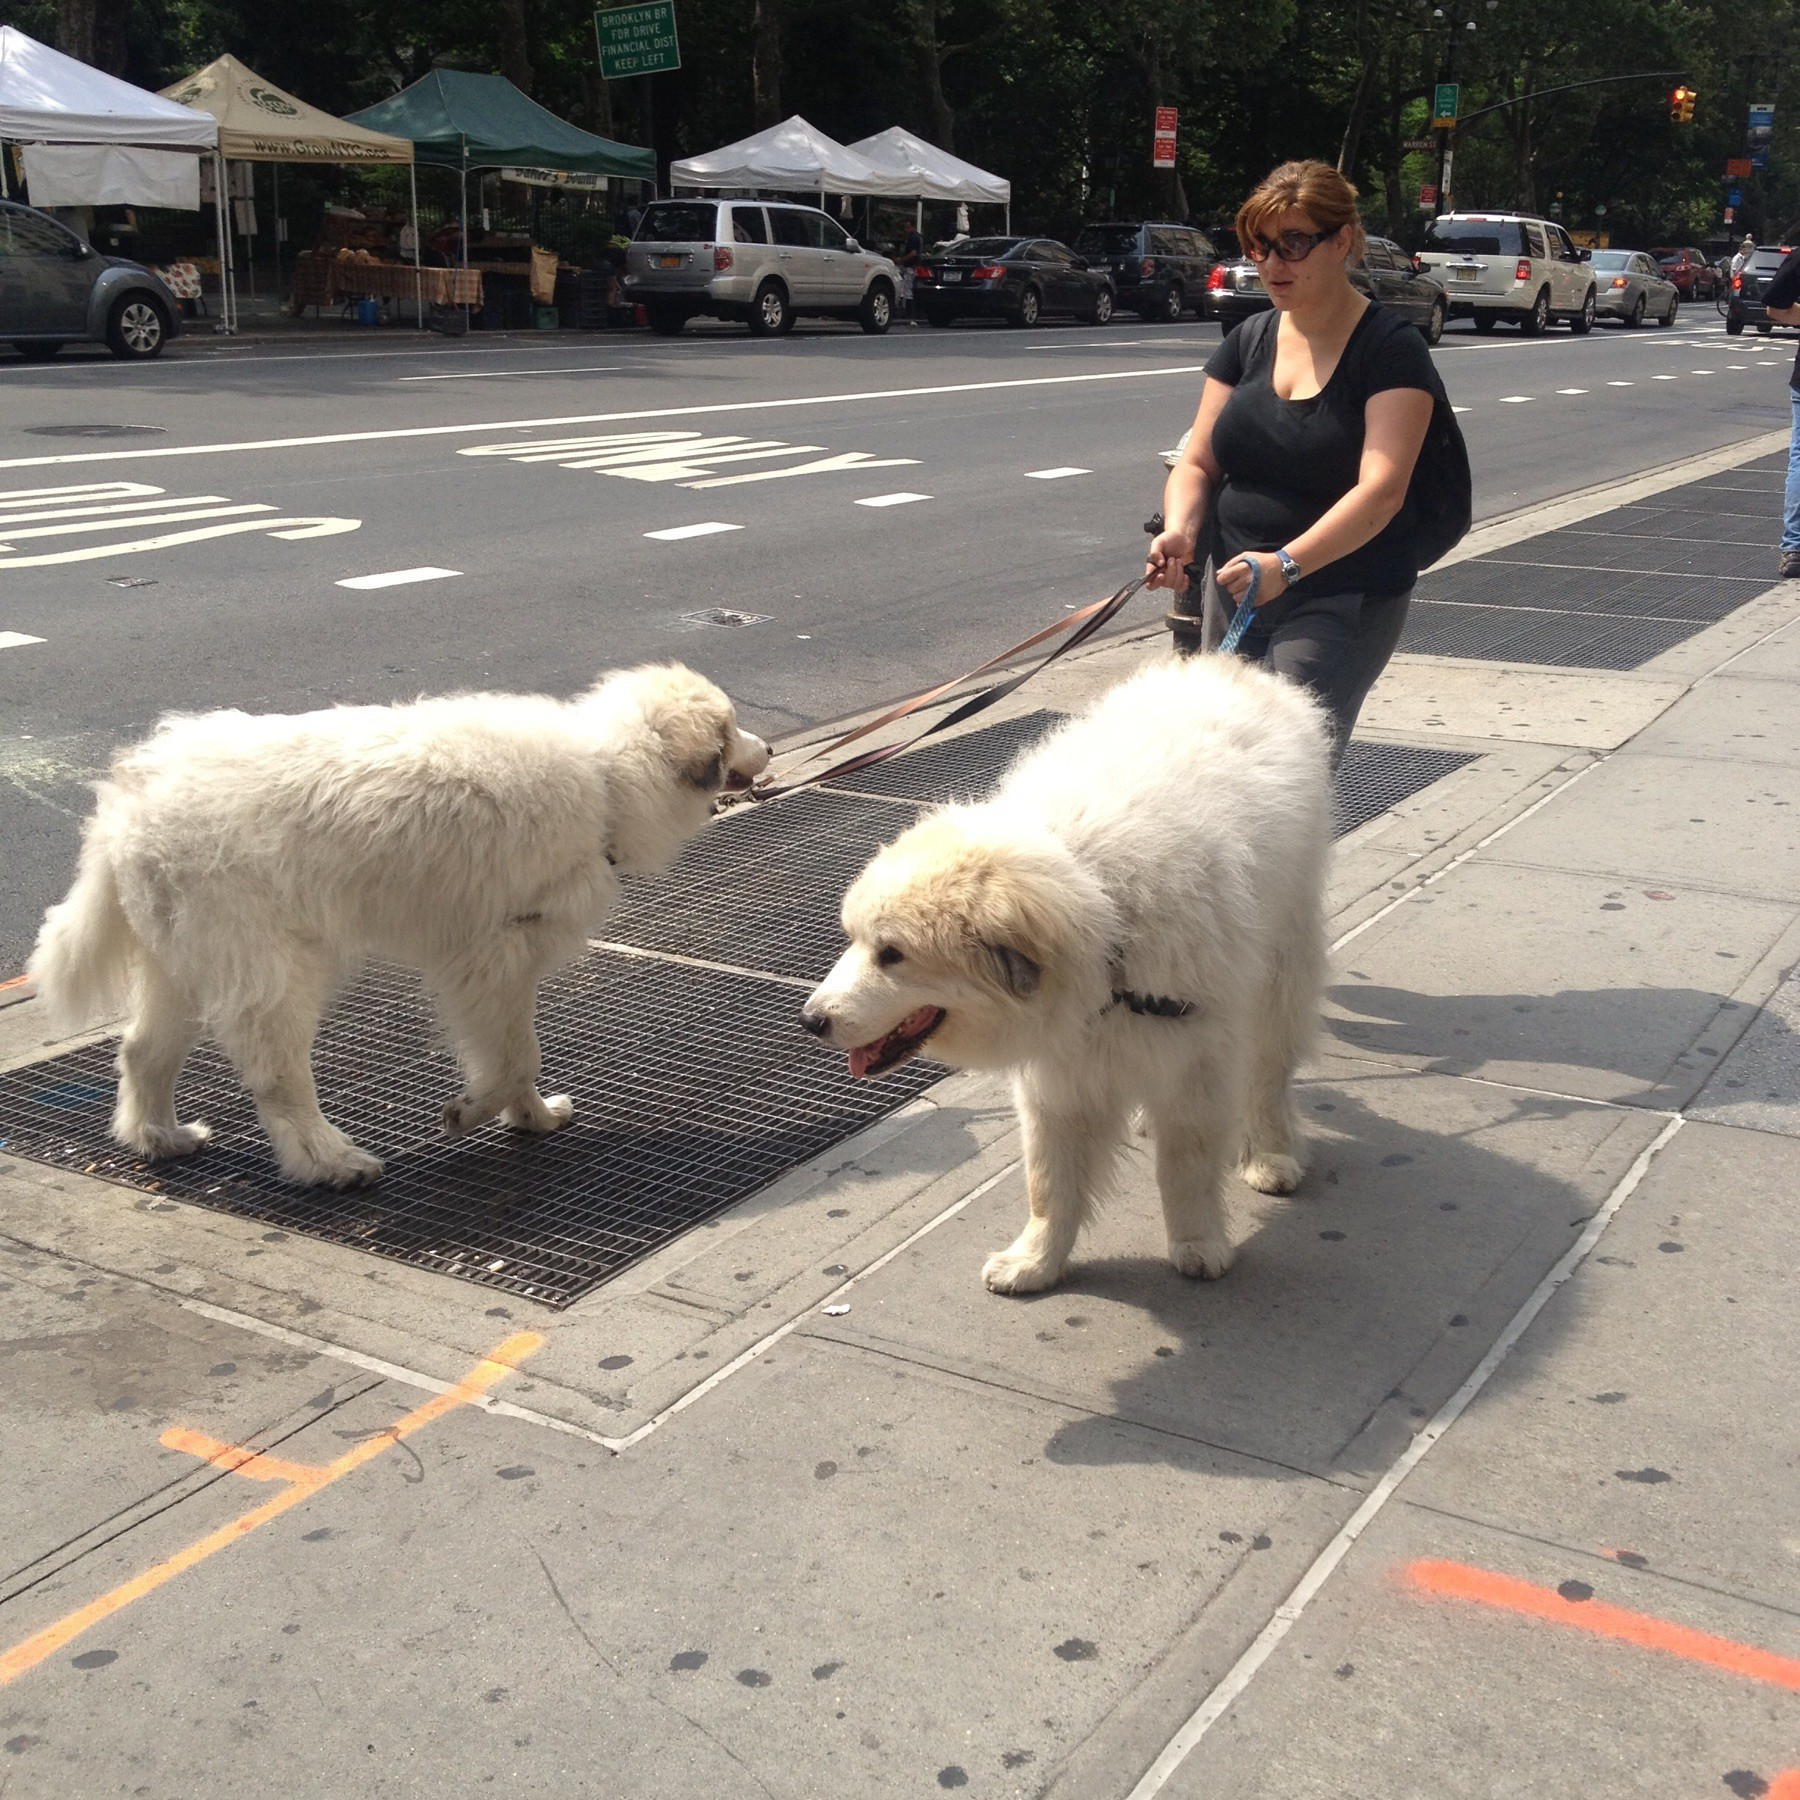 Two extremely large white dogs being walked on a New York City sidewalk.